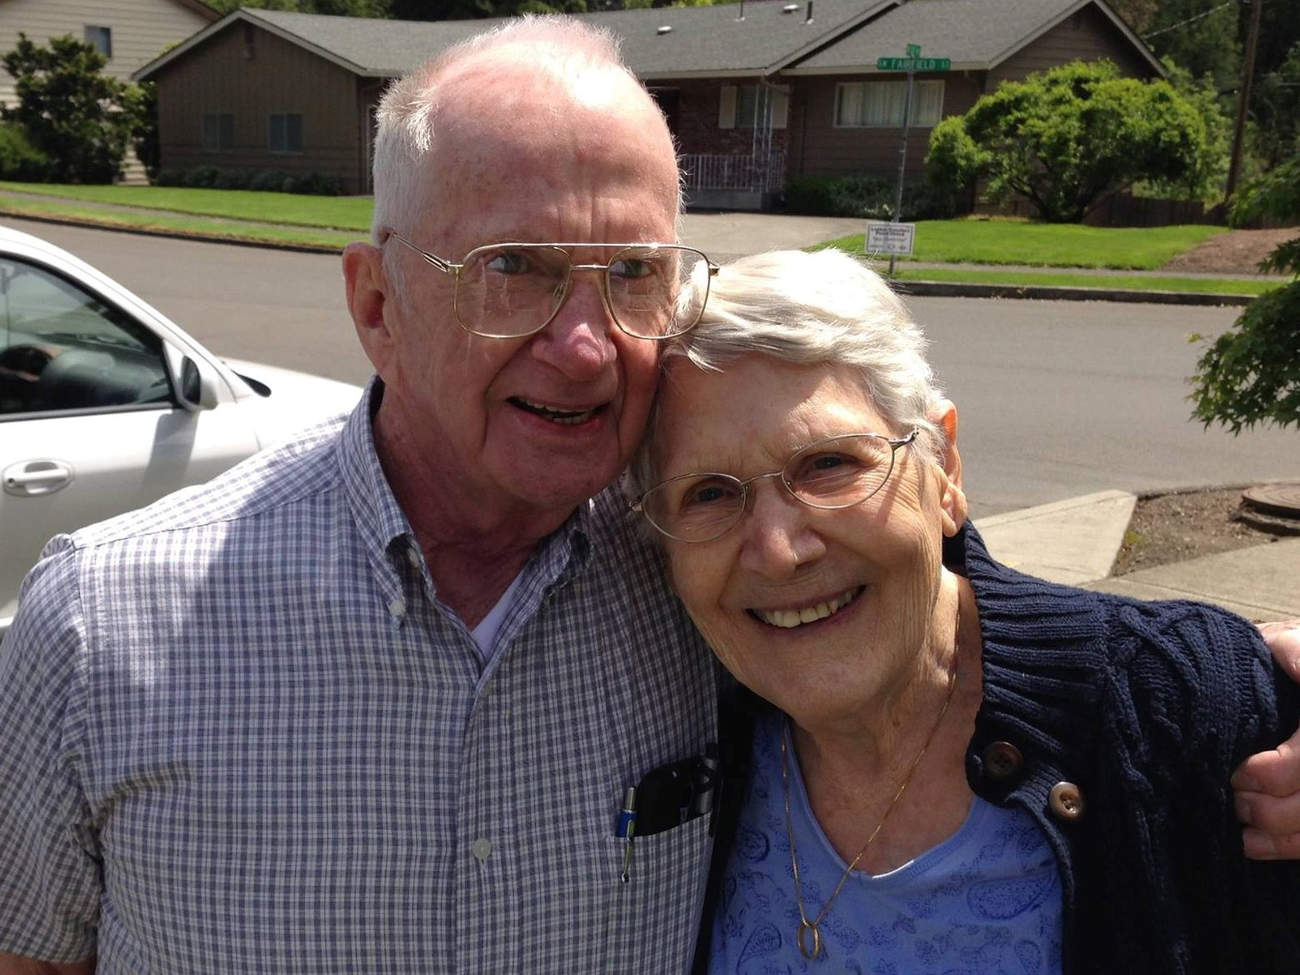 Charlie and Francie Emerick rest after a rousing family croquet game at daughter Jerilyn's home in Portland, Ore., in May 2016. They died less than a year later. (Courtesy of Jerilyn Marler)